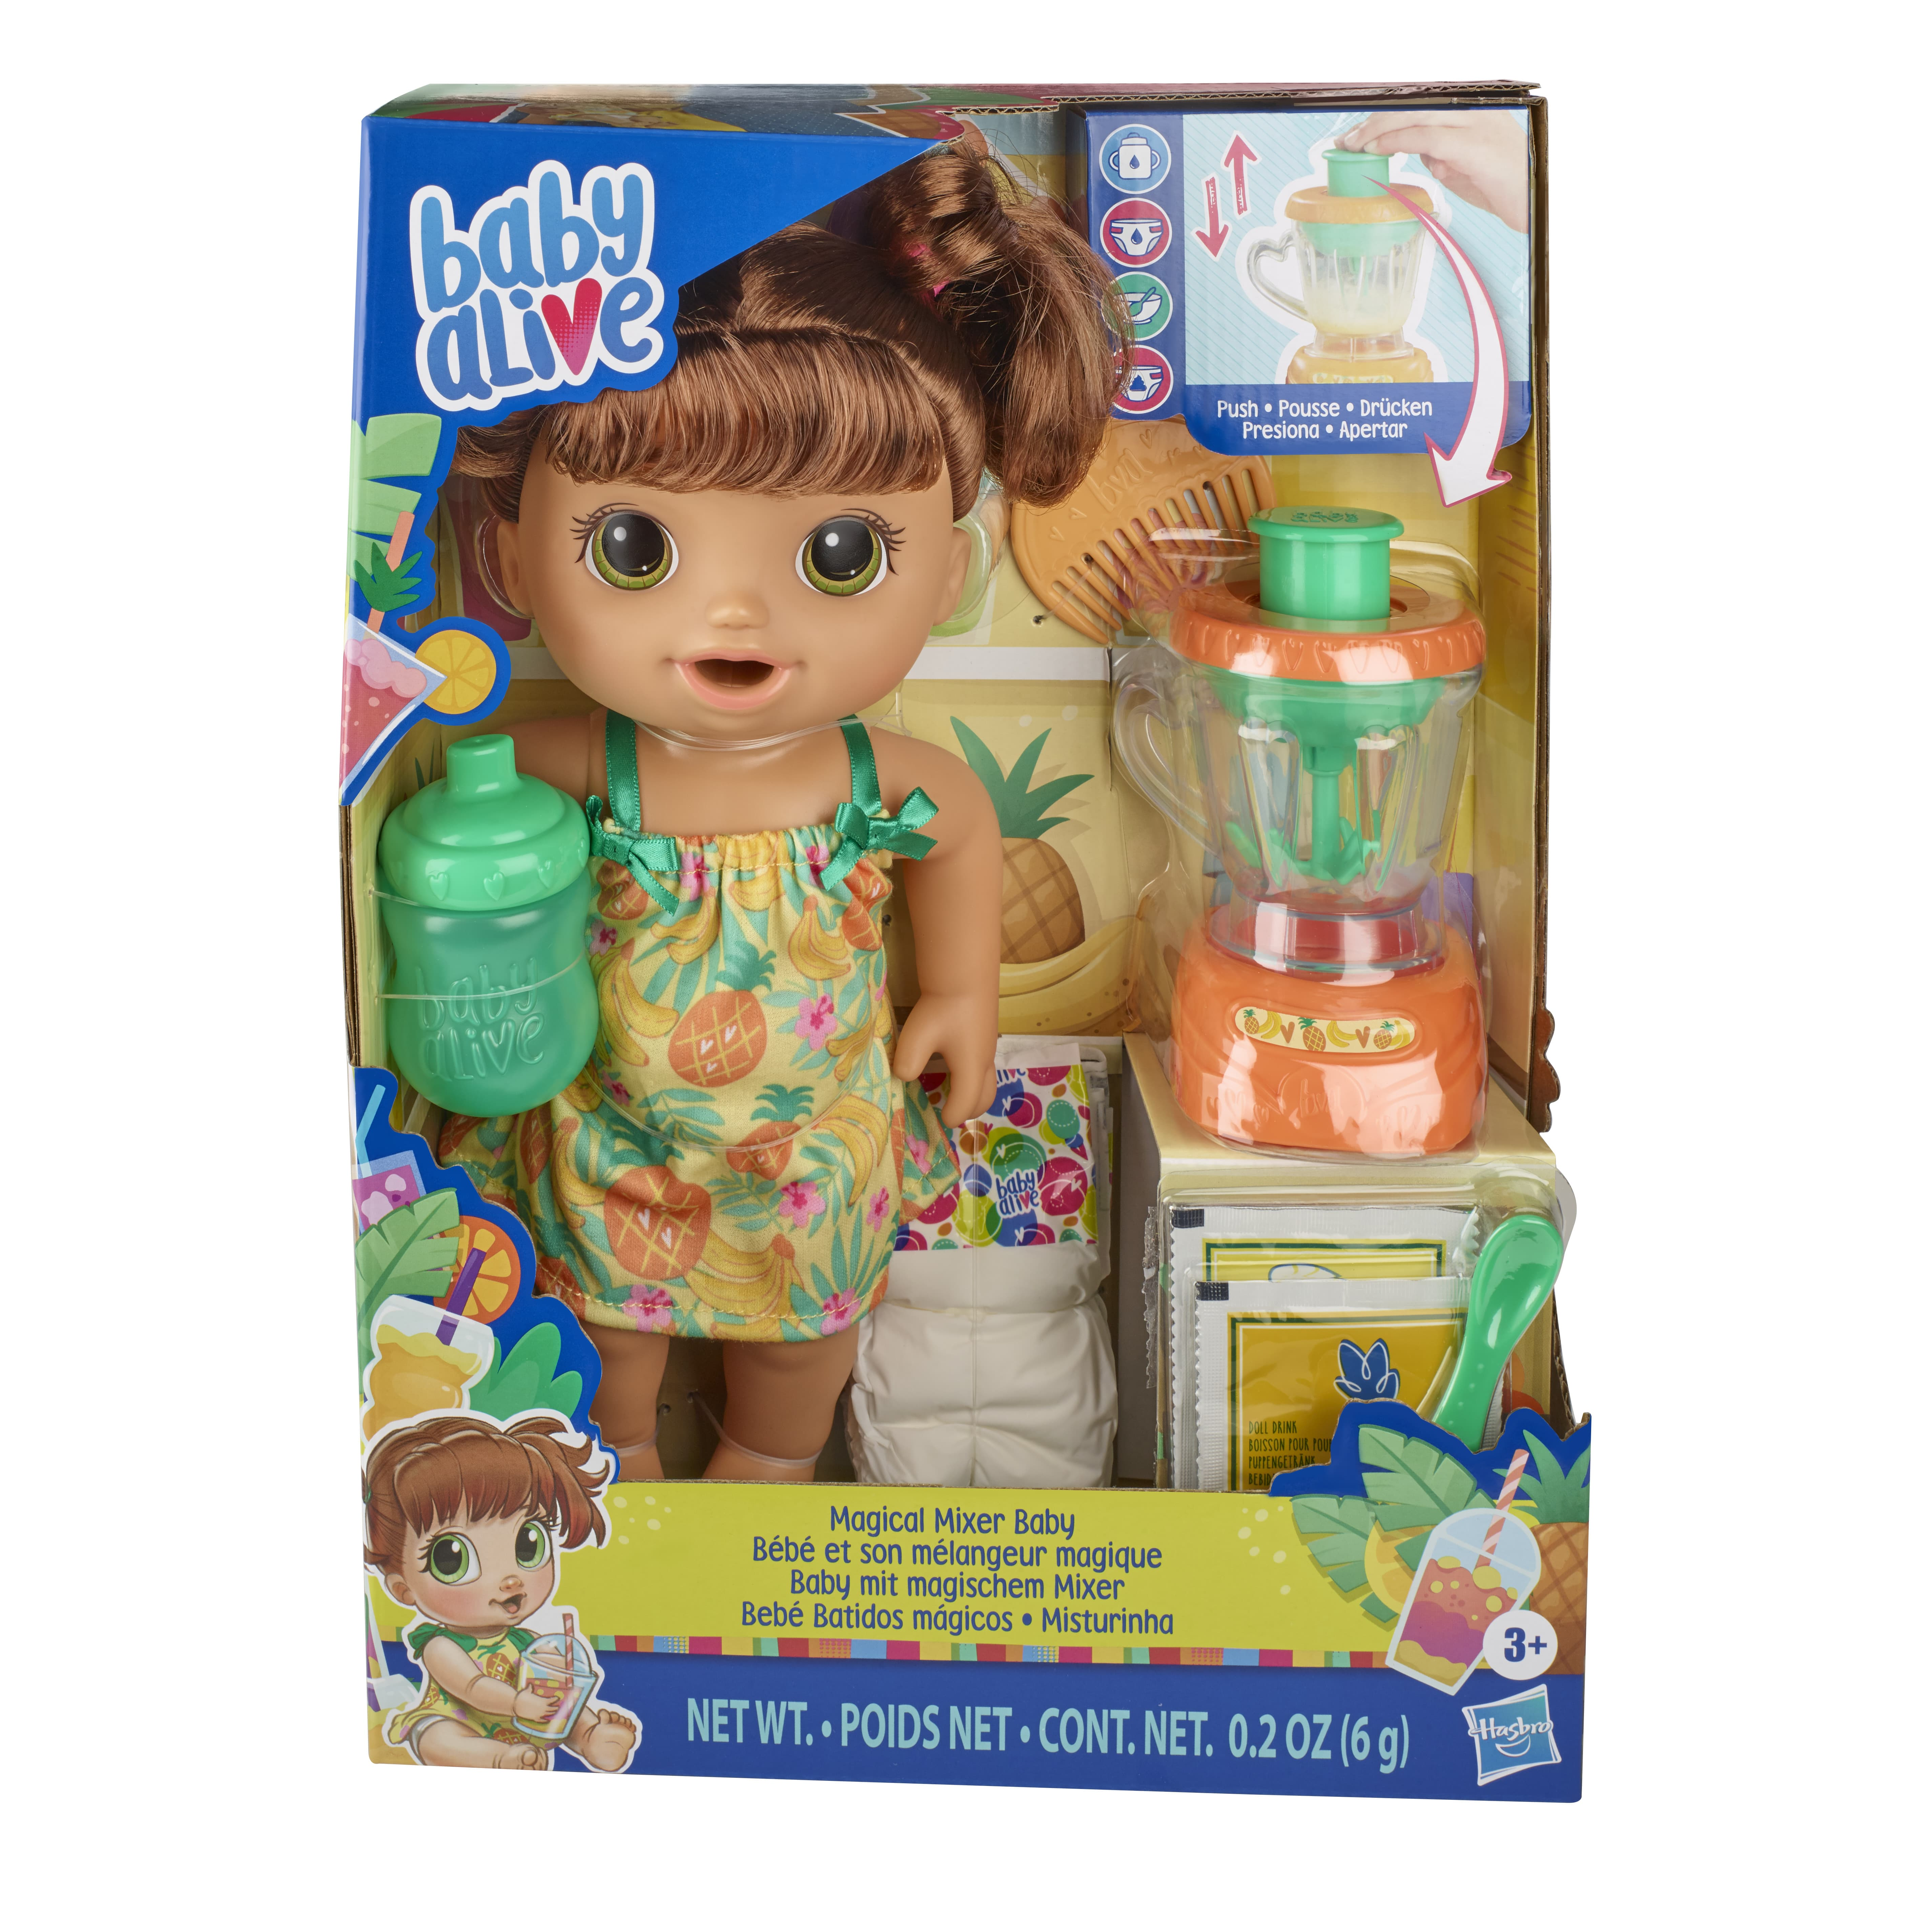 E6944 BABY ALIVE MAGICAL MIXER 2 In Pack